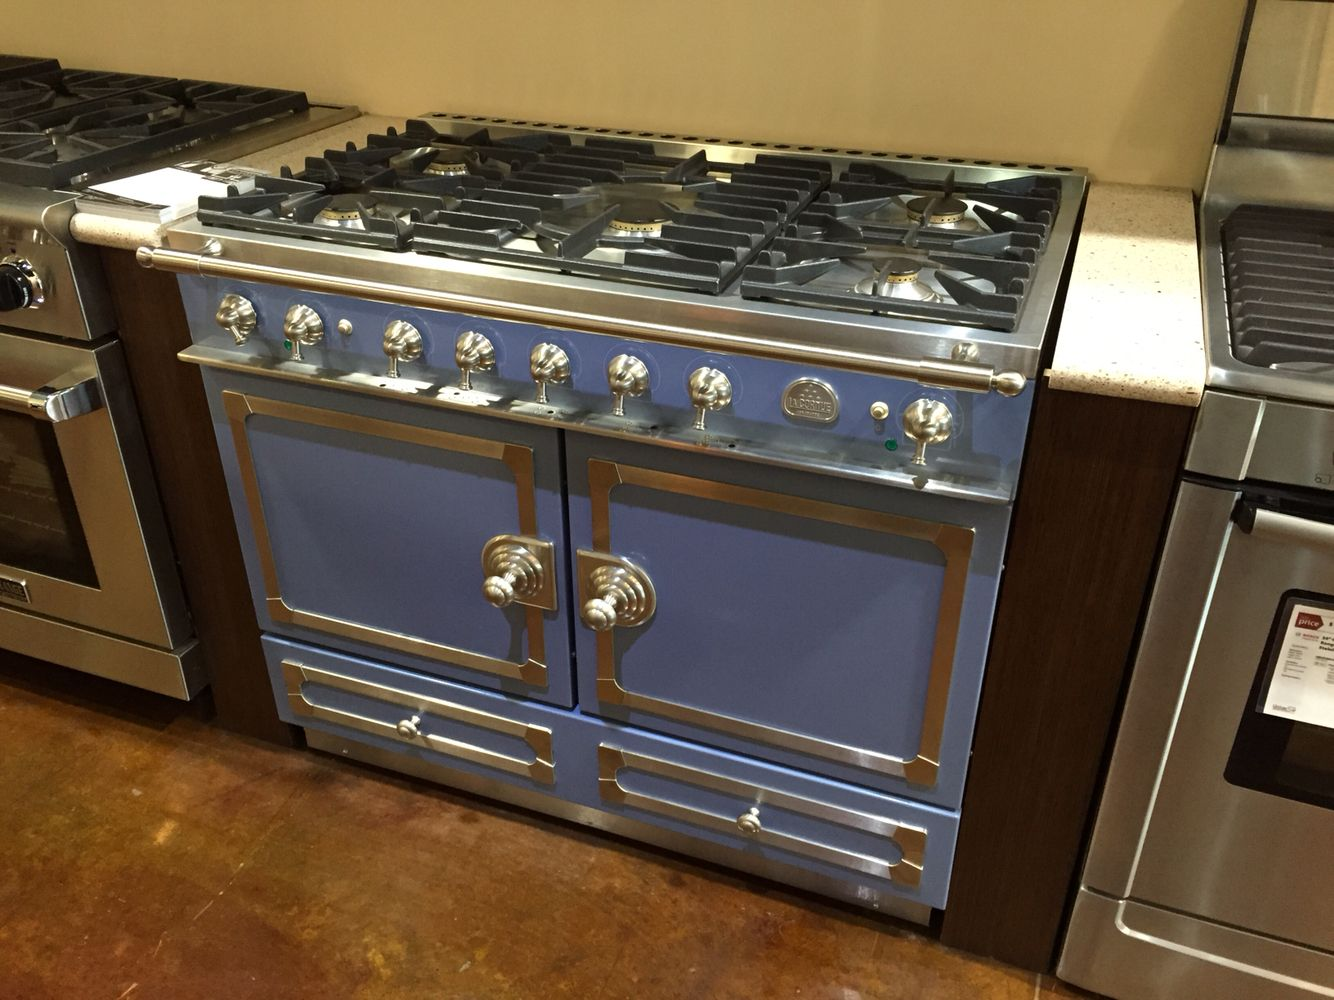 Marvelous Beautiful La Cornue Blue Range On Display At Universal Appliance And Kitchen  Center Showroom In Calabasas